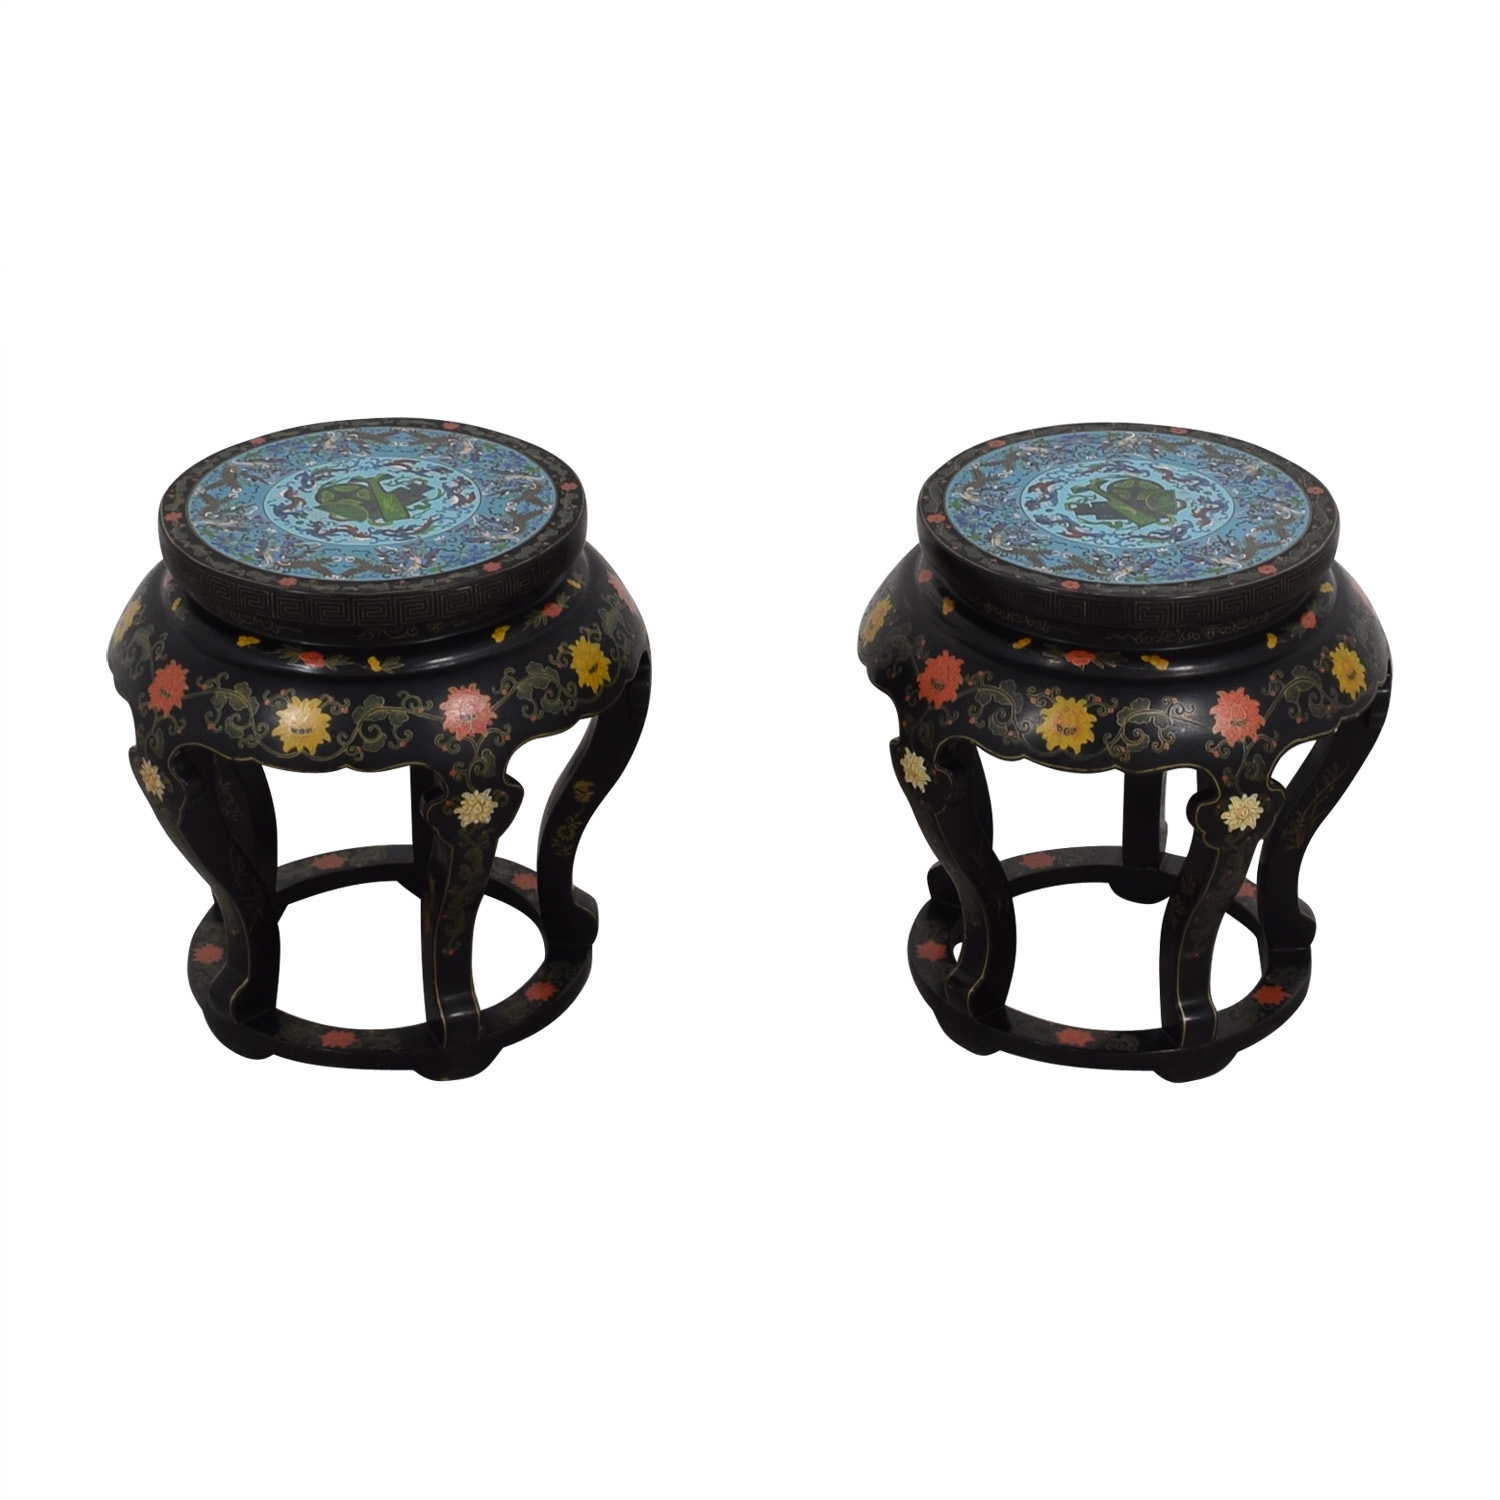 Antique Chinese Round Tables with Cloisonne Top for sale